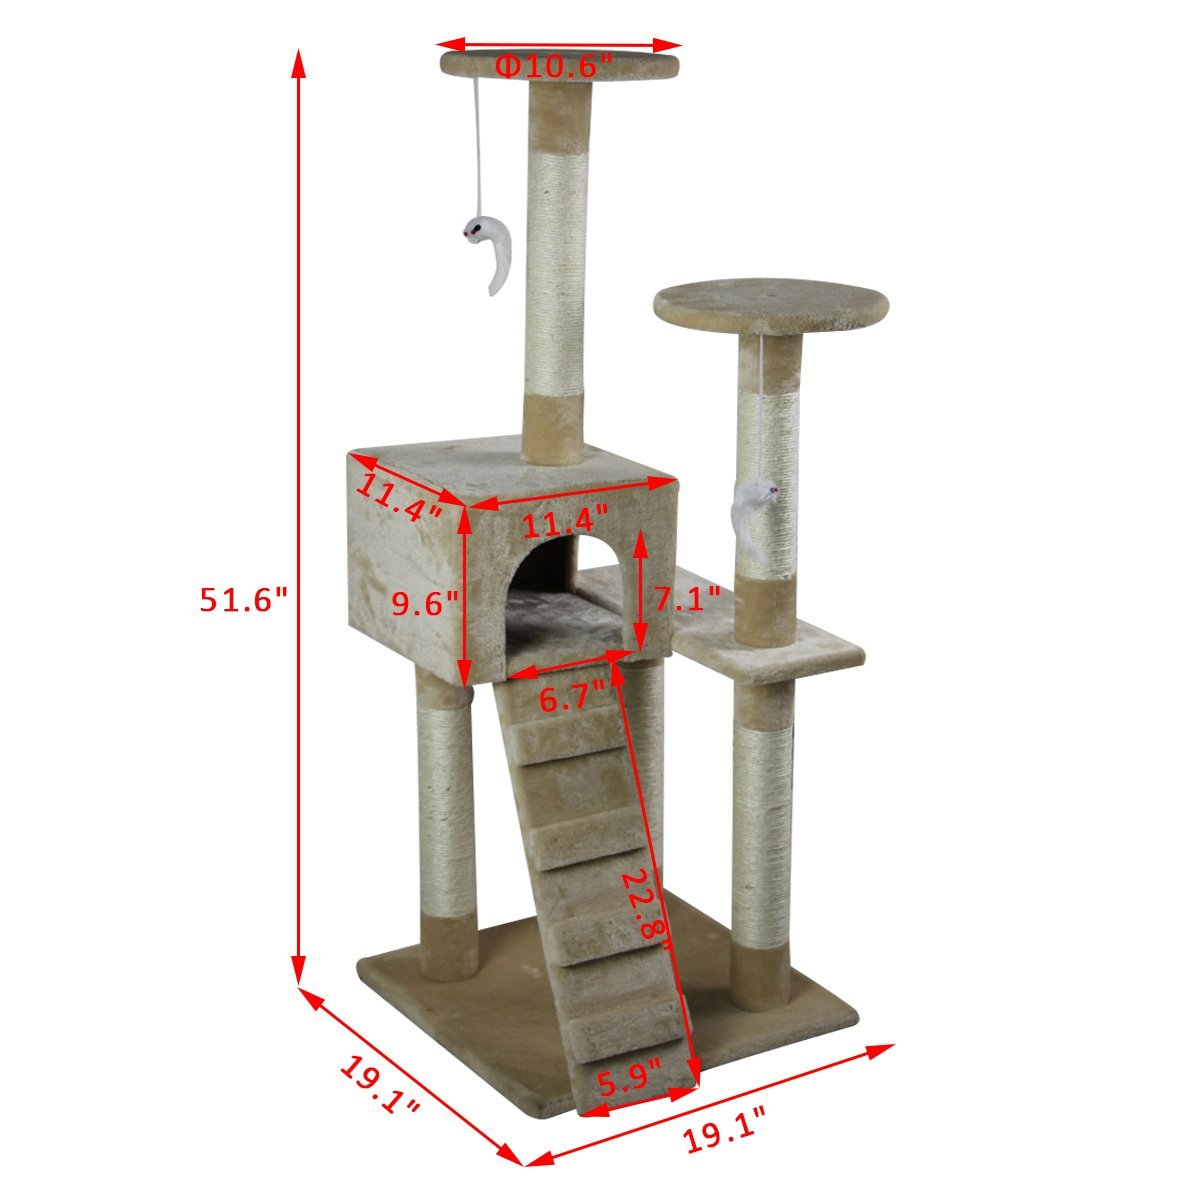 52-039-039-Cat-Tree-Multi-Level-Tower-Kitten-Condo-House-Activity-Center-Pet-Furniture thumbnail 3